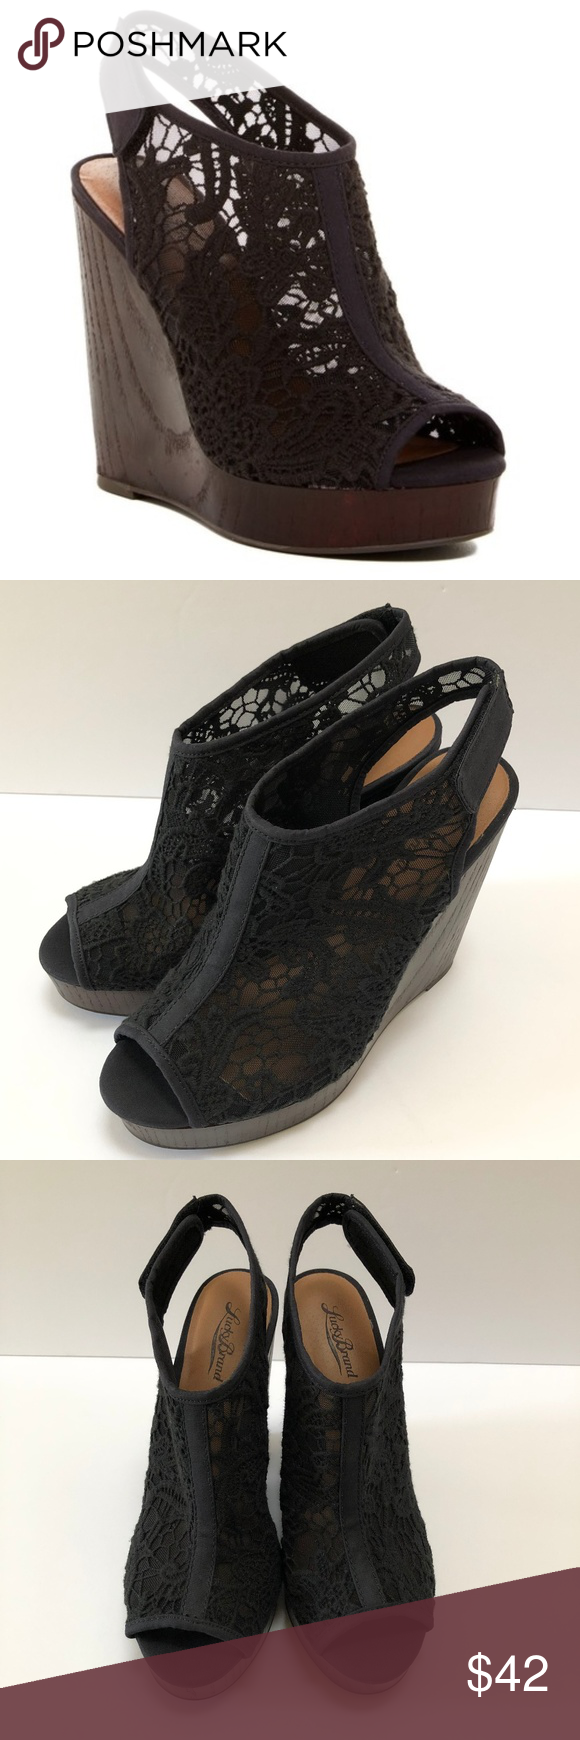 748a6c2957f Lucky Brand Open Toe Black Lace Wedges Sandals 8.5 Lucky Brand Wedges  Platform Sandals Wedge Heels